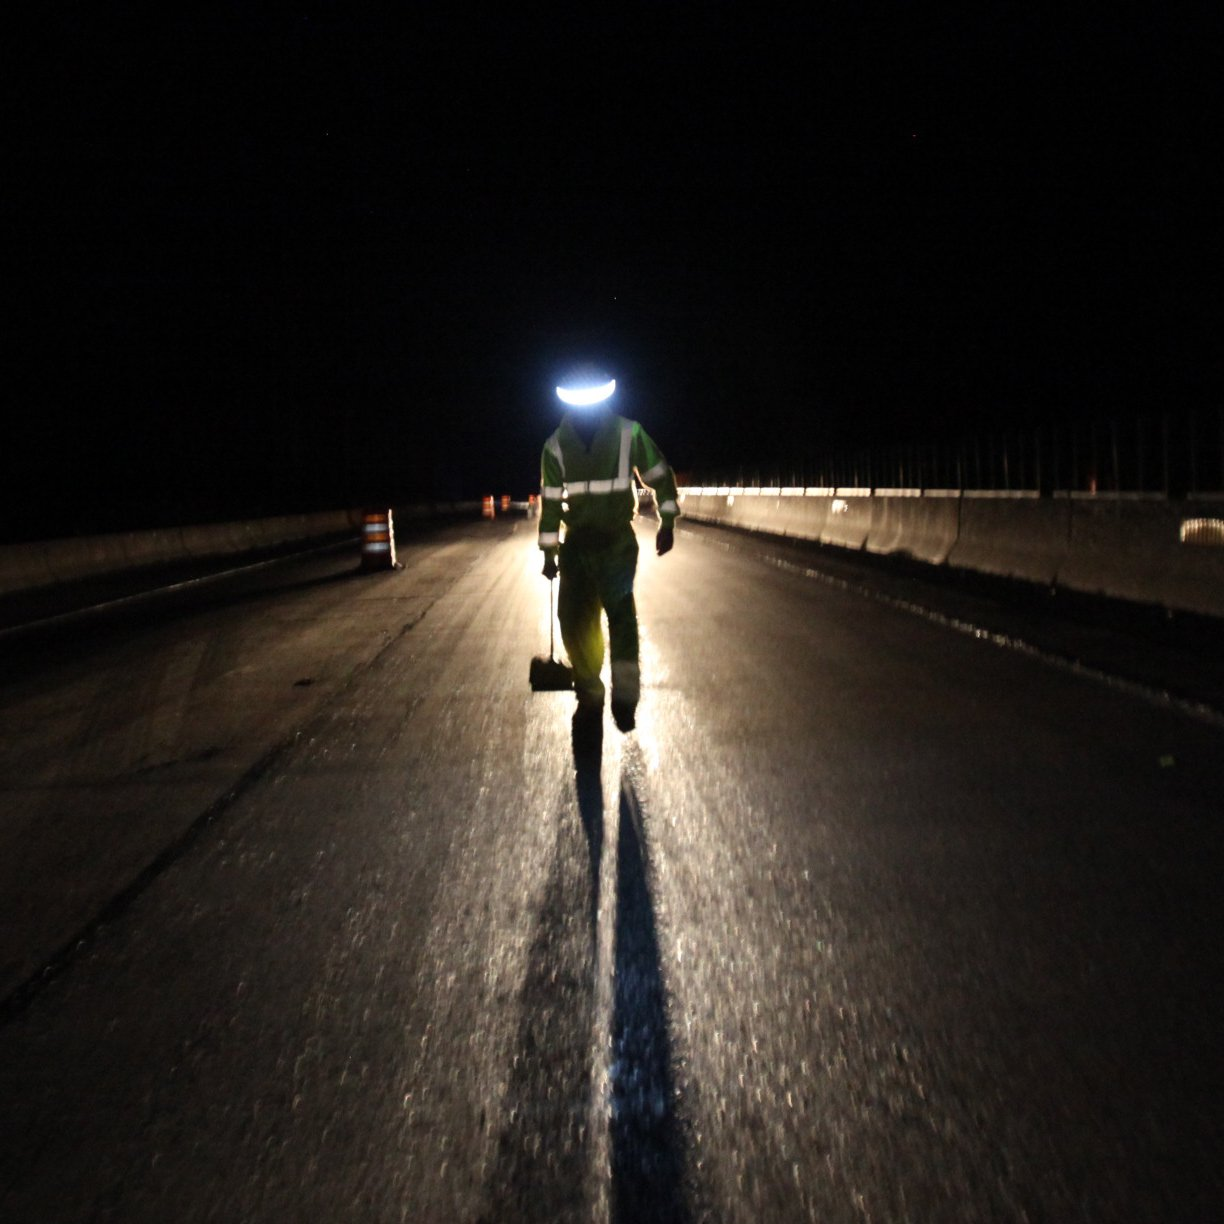 ILLUMAGEAR HAWF-01A Halo 360-Degree LED Personal Safety and Task Light, for Hard Hat by ILLUMAGEAR (Image #6)